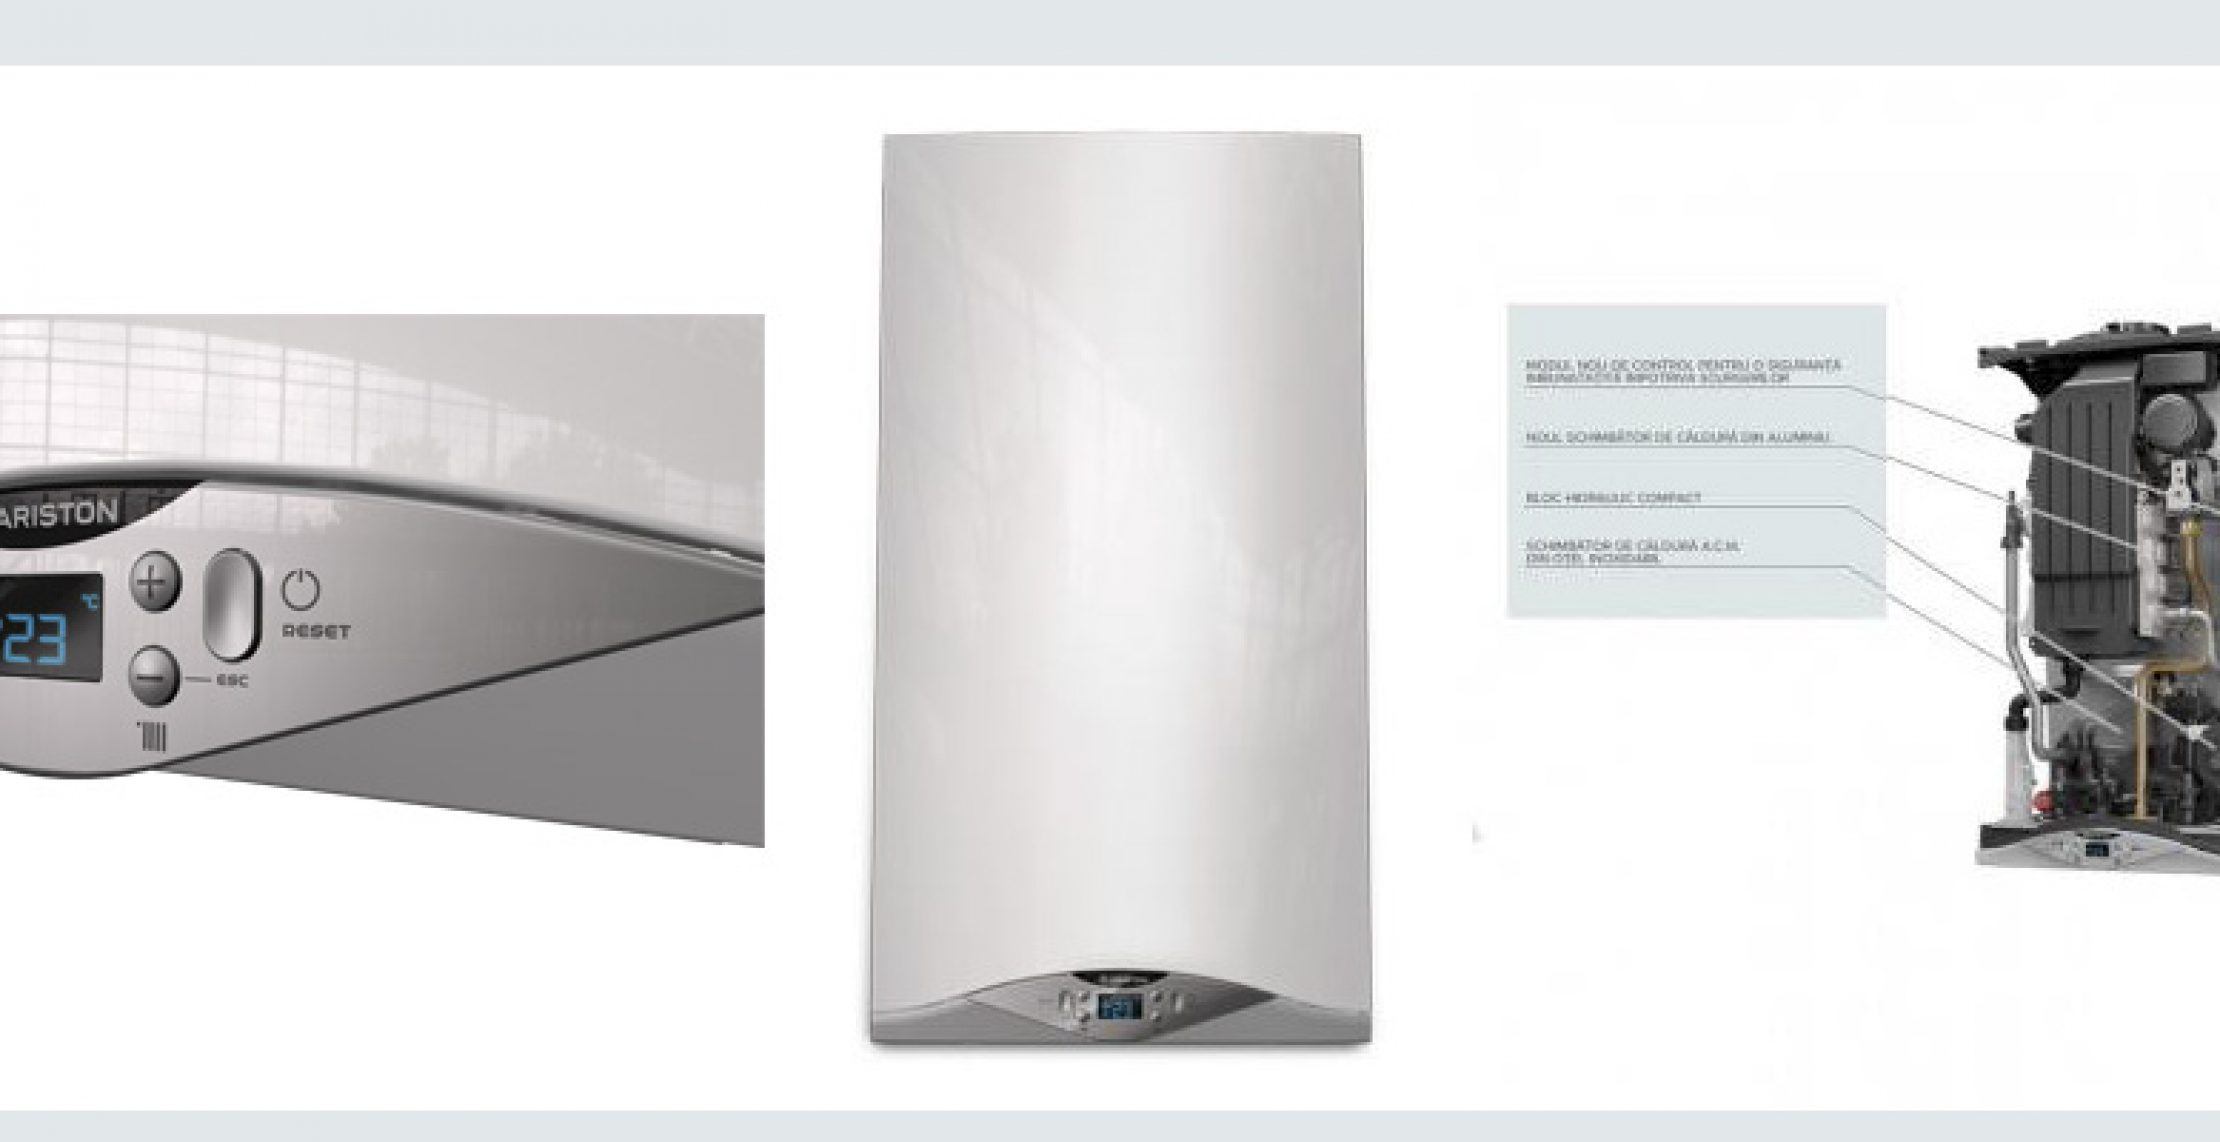 Boiler Ariston: customer reviews